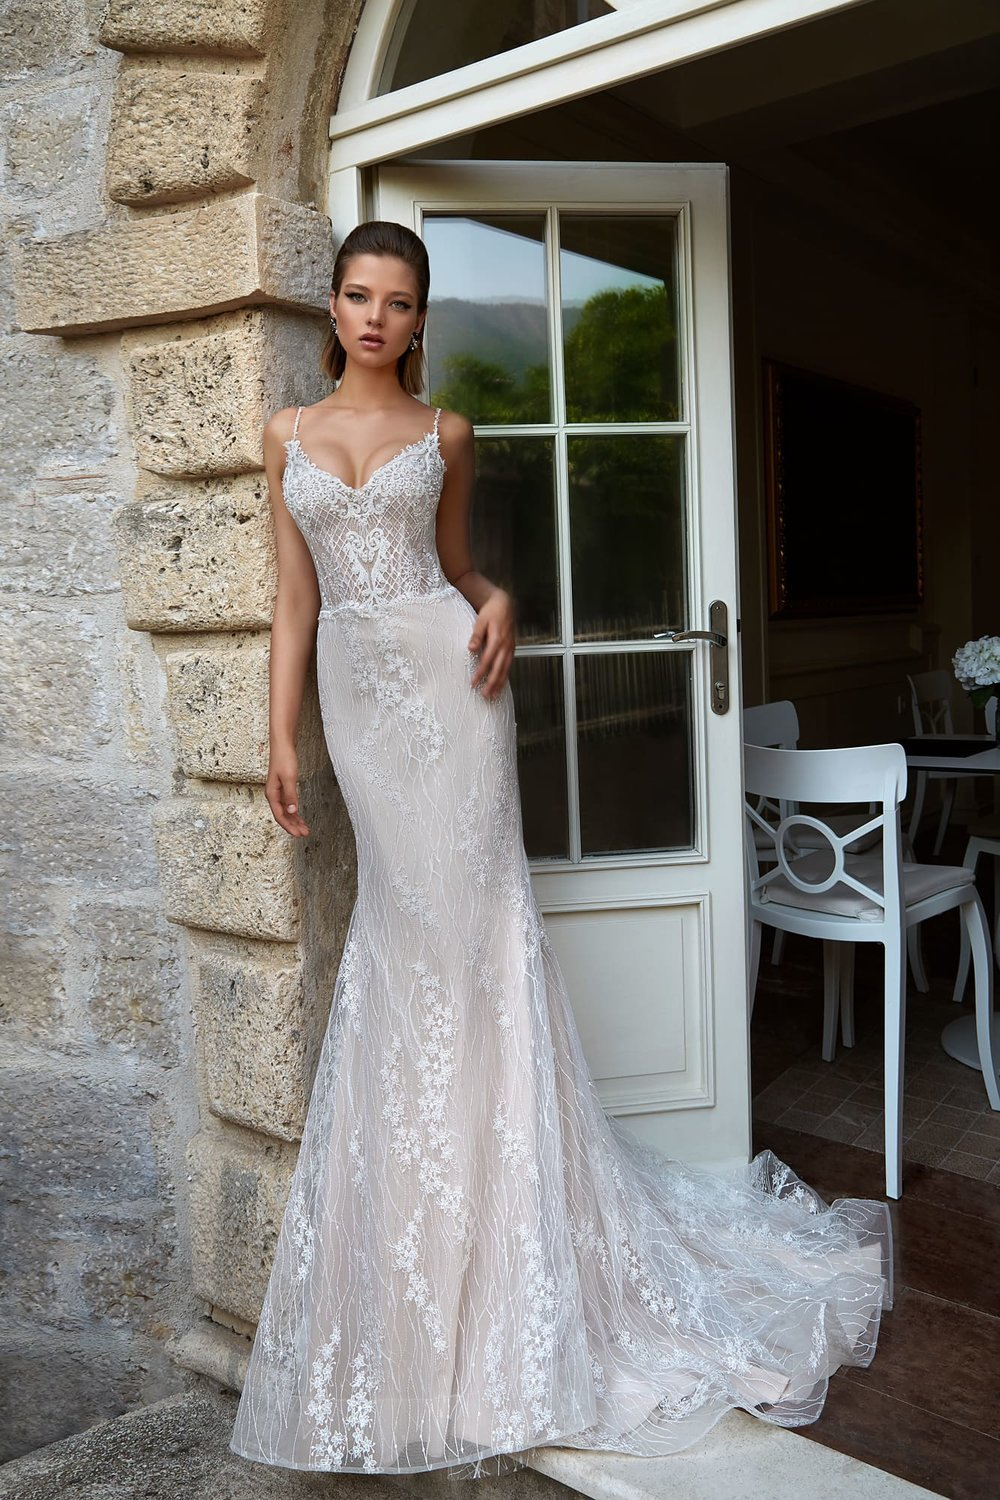 CALYPSO wedding dress $900